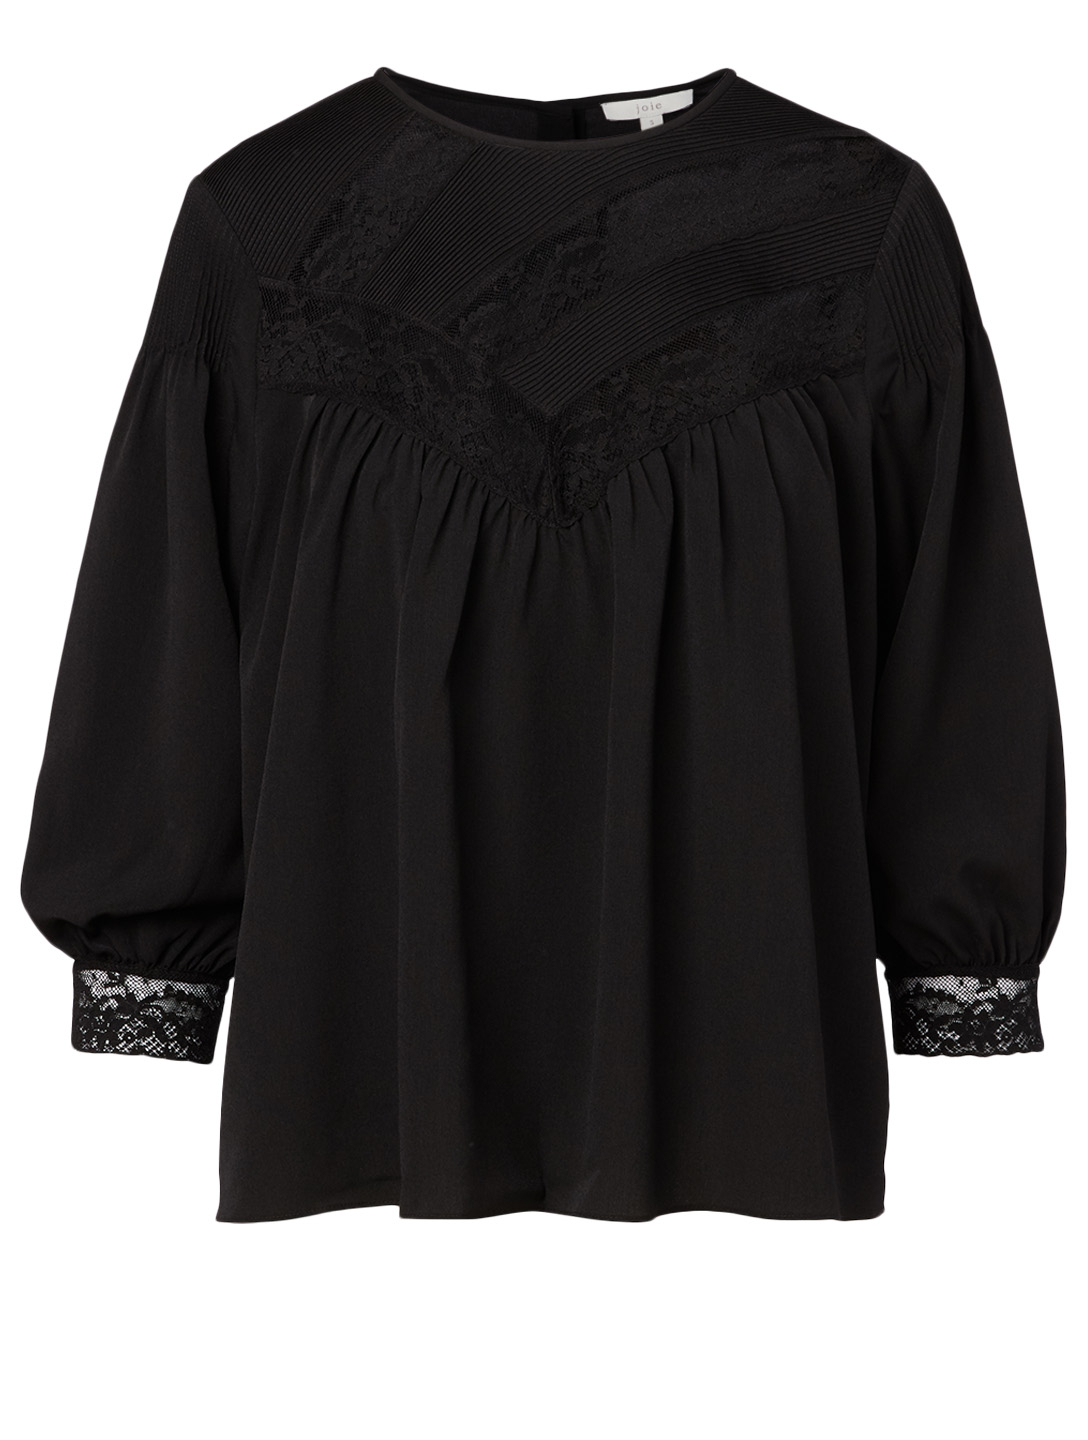 JOIE Margette Lace Top Women's Black